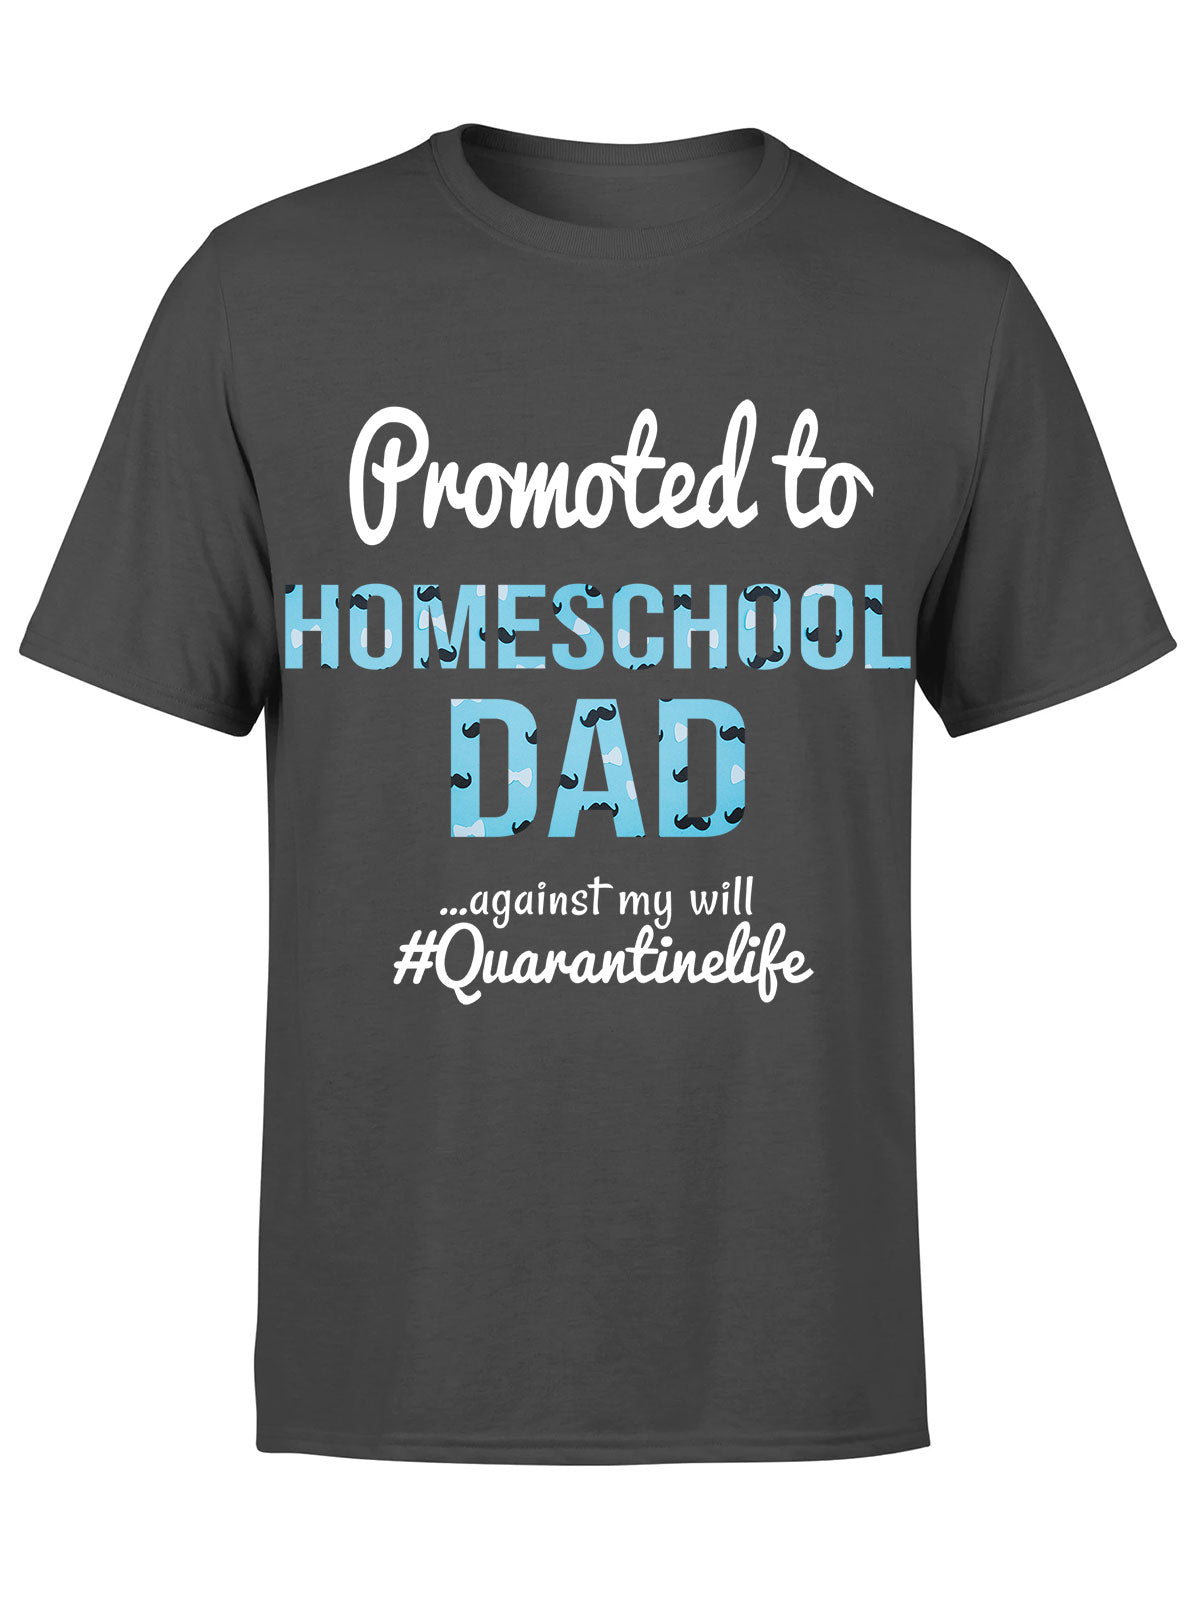 Standard T-Shirt - Homeschool Dad - Quarantine Father's Day 2020, Gifts For Dad - 7352